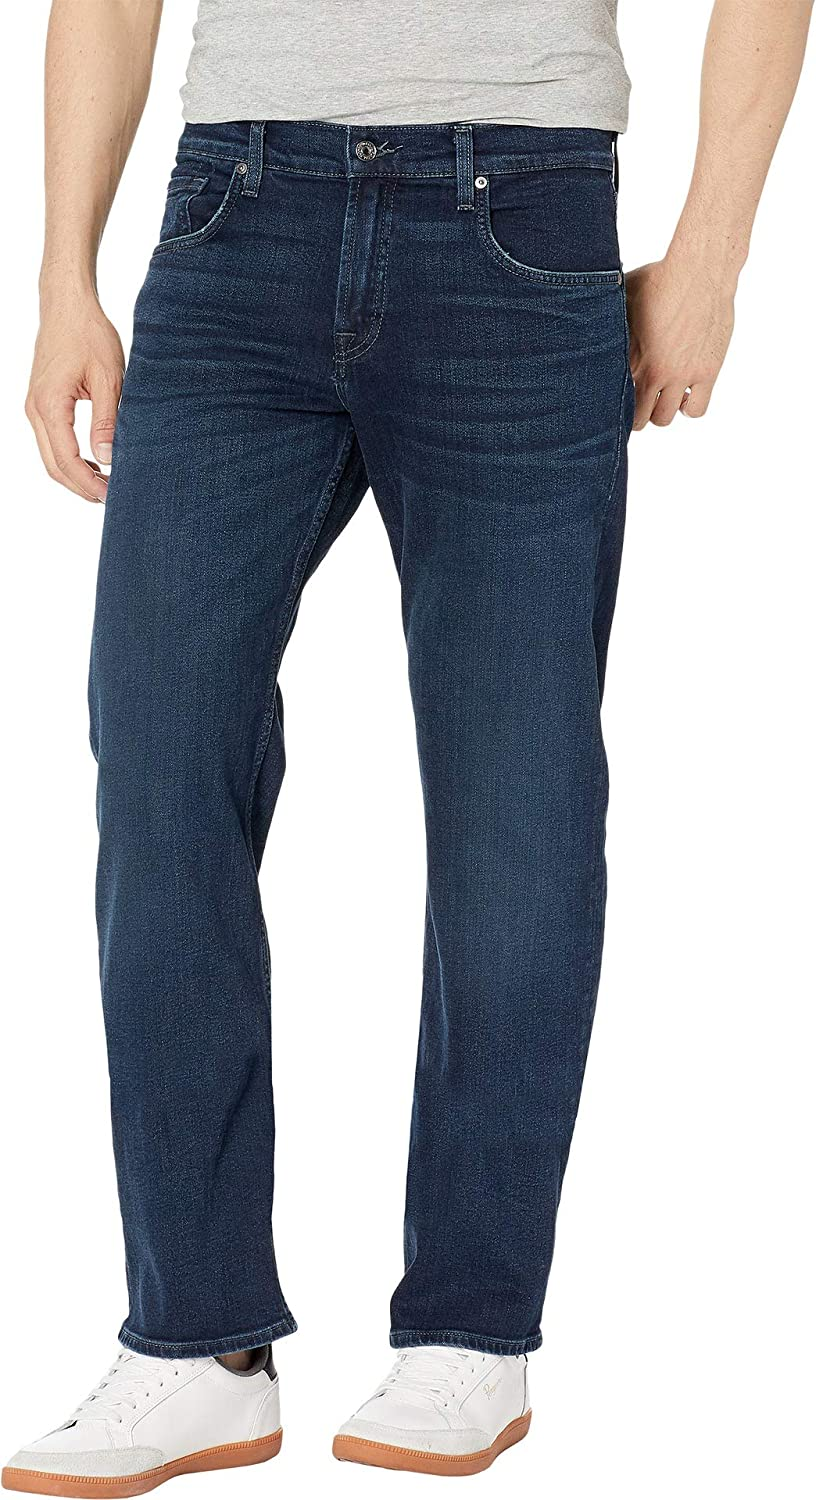 7 For All Mankind Mens Jeans Relaxed Fit Straight Leg Pant